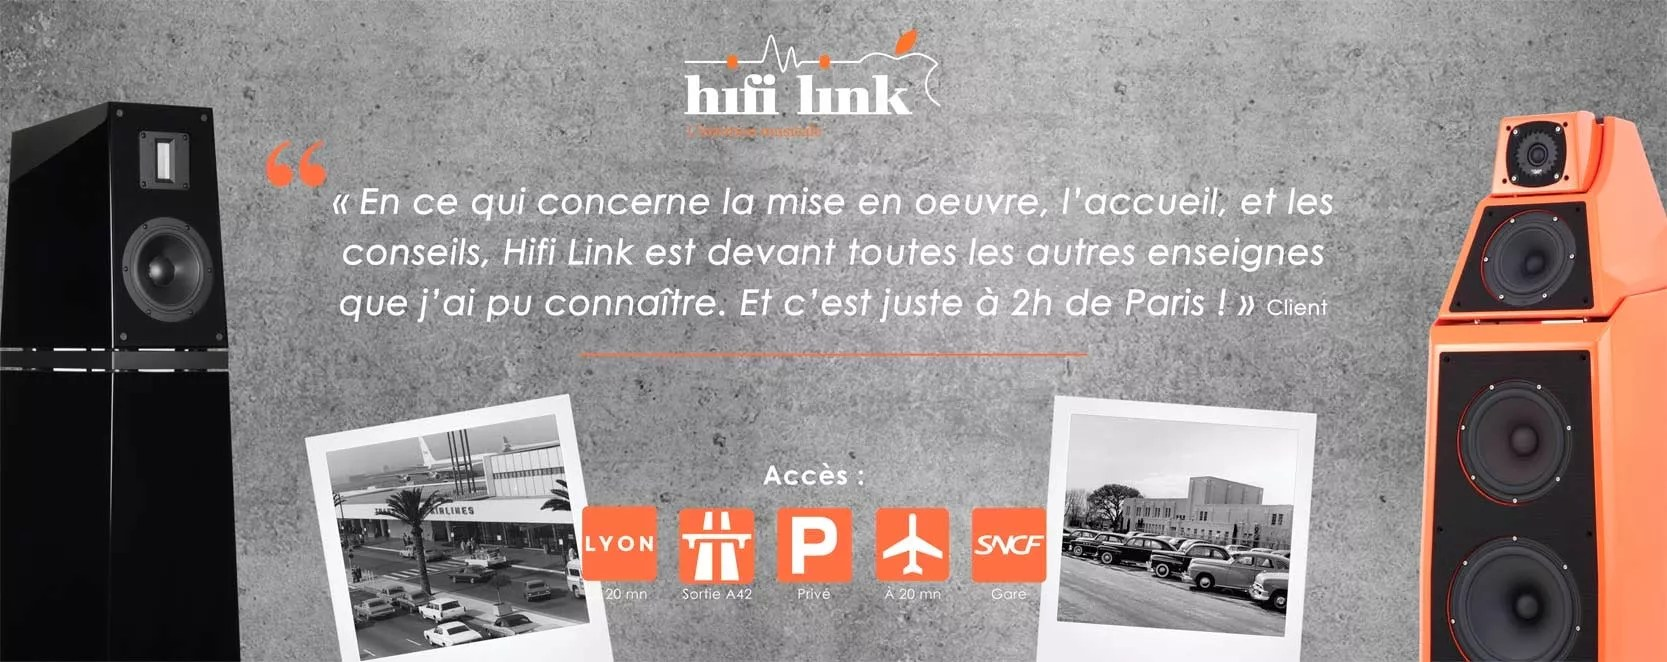 hifi-link-magasin-acces-slide